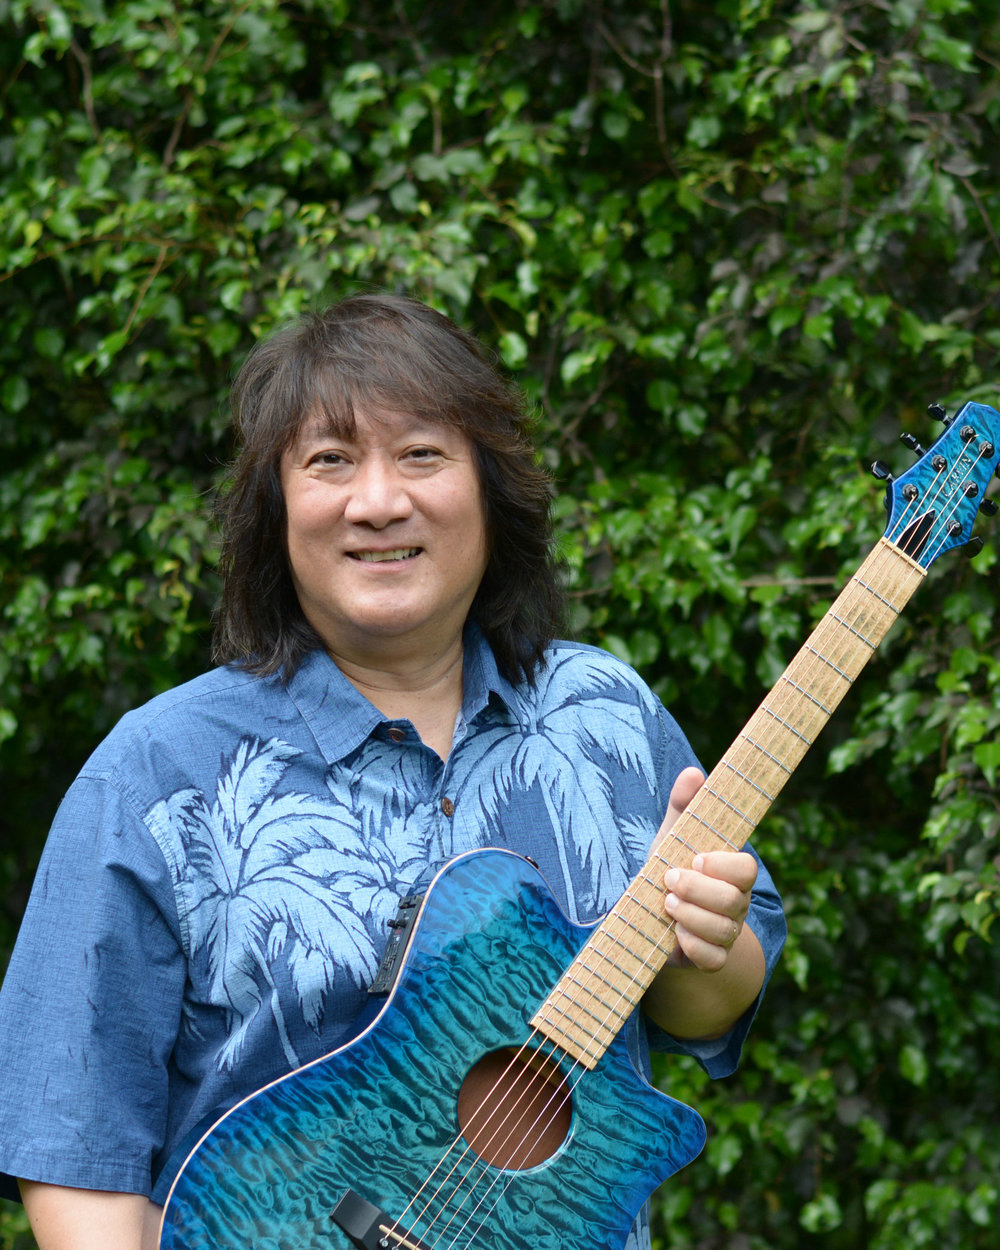 "Harry Koizumi, also known as ""Uncle"" Harry, was born and raised in Honolulu, Hawaii. He studied classical guitar at the University of Hawaii and sang in the UH Choir and with the Chamber Singers. Since 1985, Harry has shared his love of music by teaching guitar and ukulele at Kailua's Coconut Grove Music Store.  In 1991 Harry became very interested in Hawaiian music and began studying with slack-key guitar master, Raymond Kane. In 1993, Harry was awarded an apprenticeship with Mr. Kane by the Hawaii State Foundation of Culture and the Arts to perpetuate the Hawaiian slack-key guitar. Harry then studied Hawaiian steel guitar with Jerry Byrd for three years."